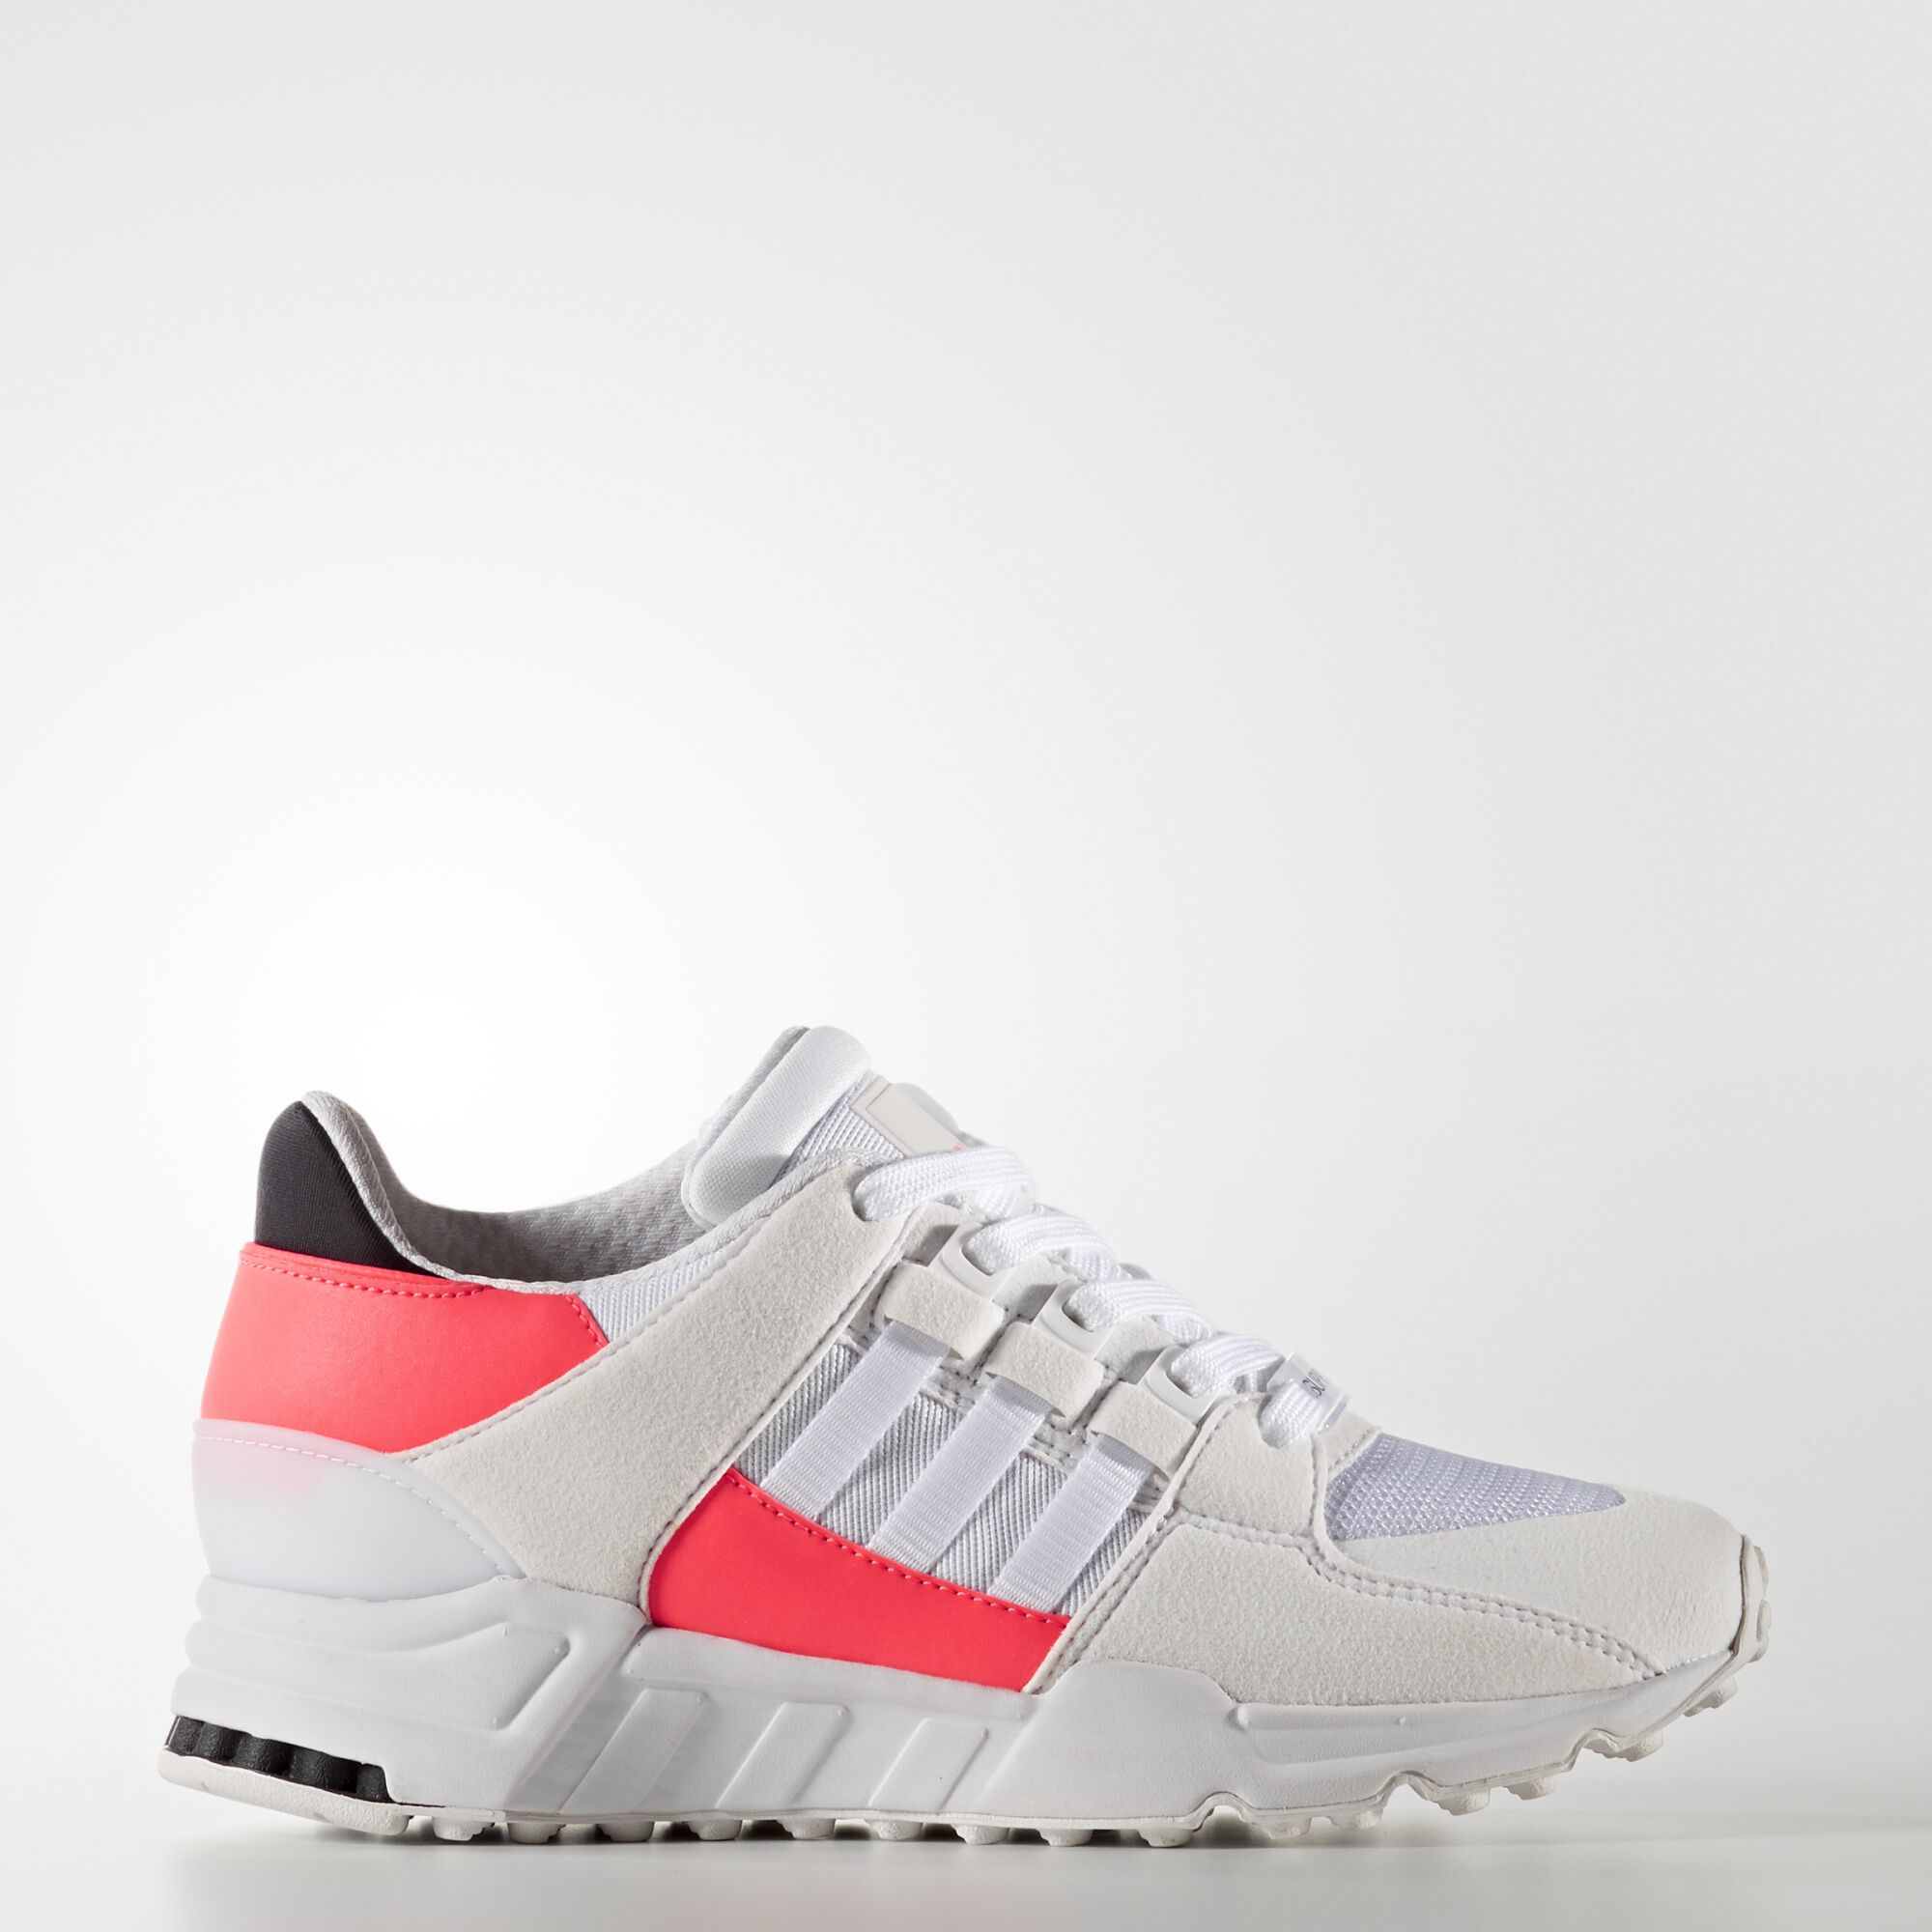 Adidas Eqt Running Support 93 Just Us